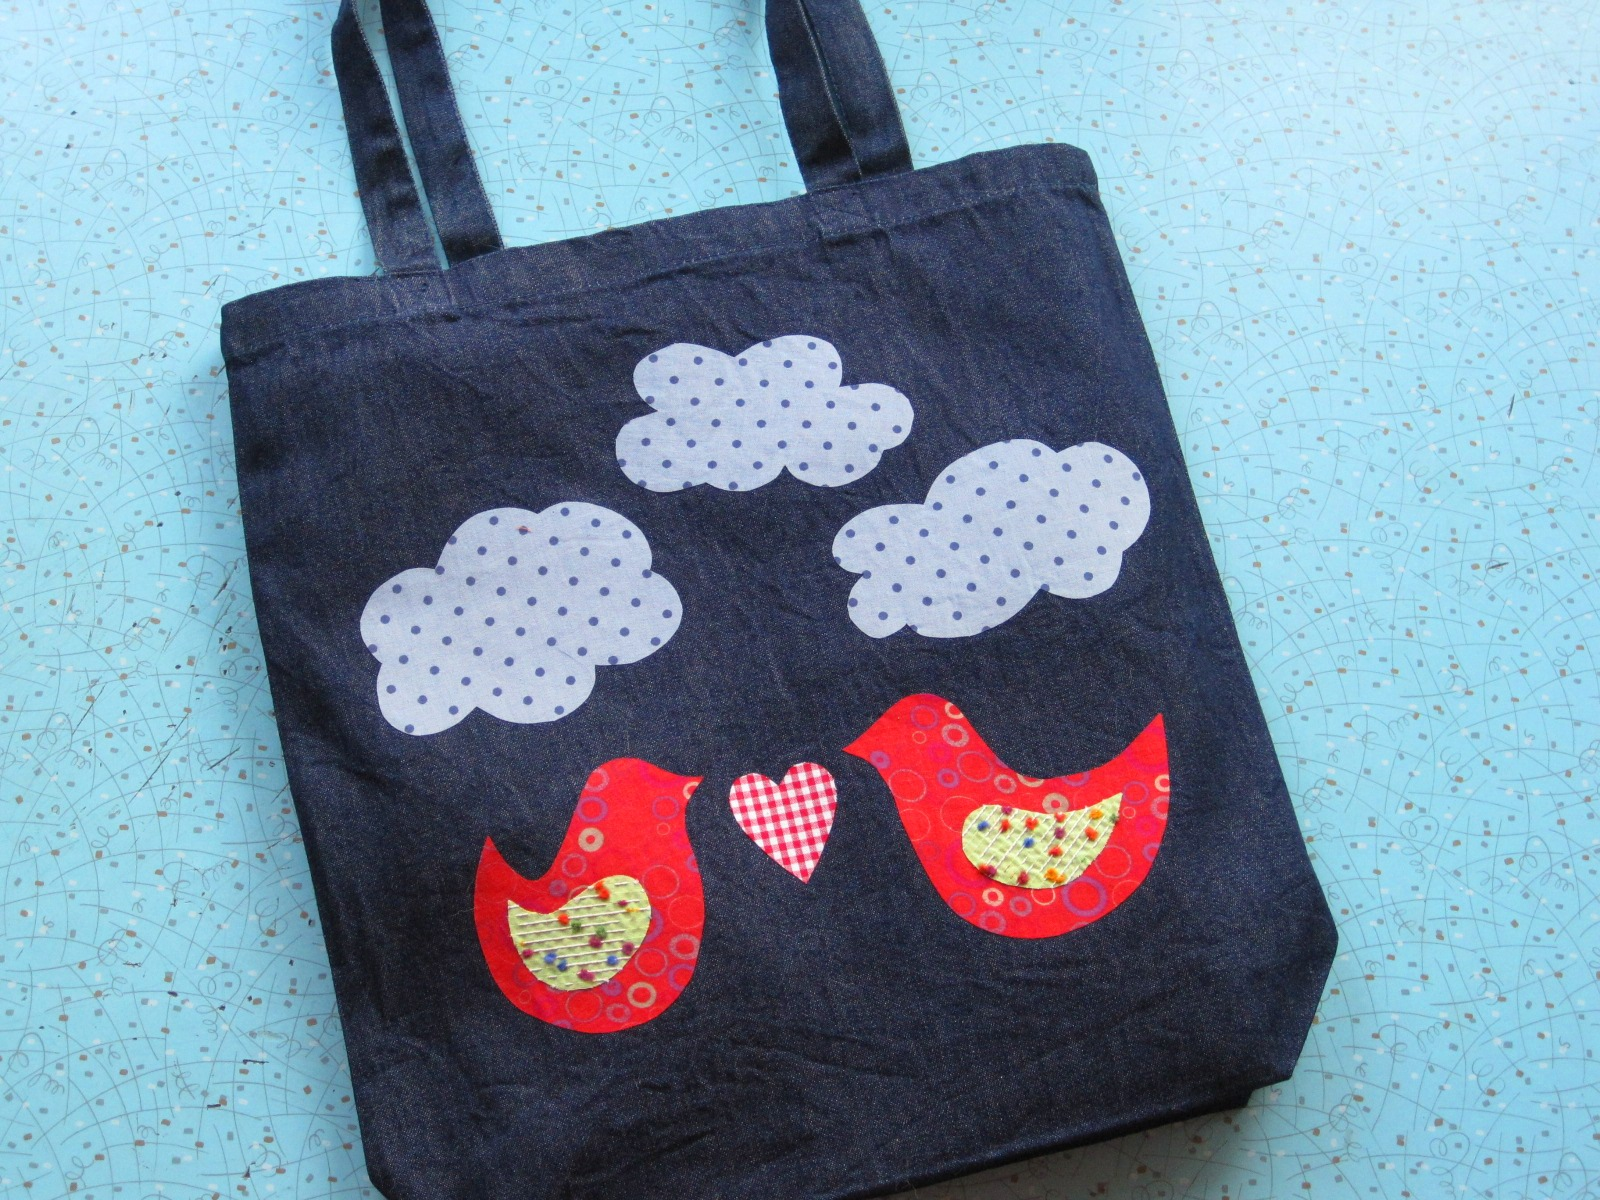 Tote-ally Awesome 2.0 - ages 7 and up - Kids will learn how to embellish a denim tote bag using a no-sew iron-on, (we like to call it magical!), applique technique.  We'll provide the tote bag and the fabric, (not to mention sparkles, trims, google eyes, buttons and pom poms!). You provide the inspiration!